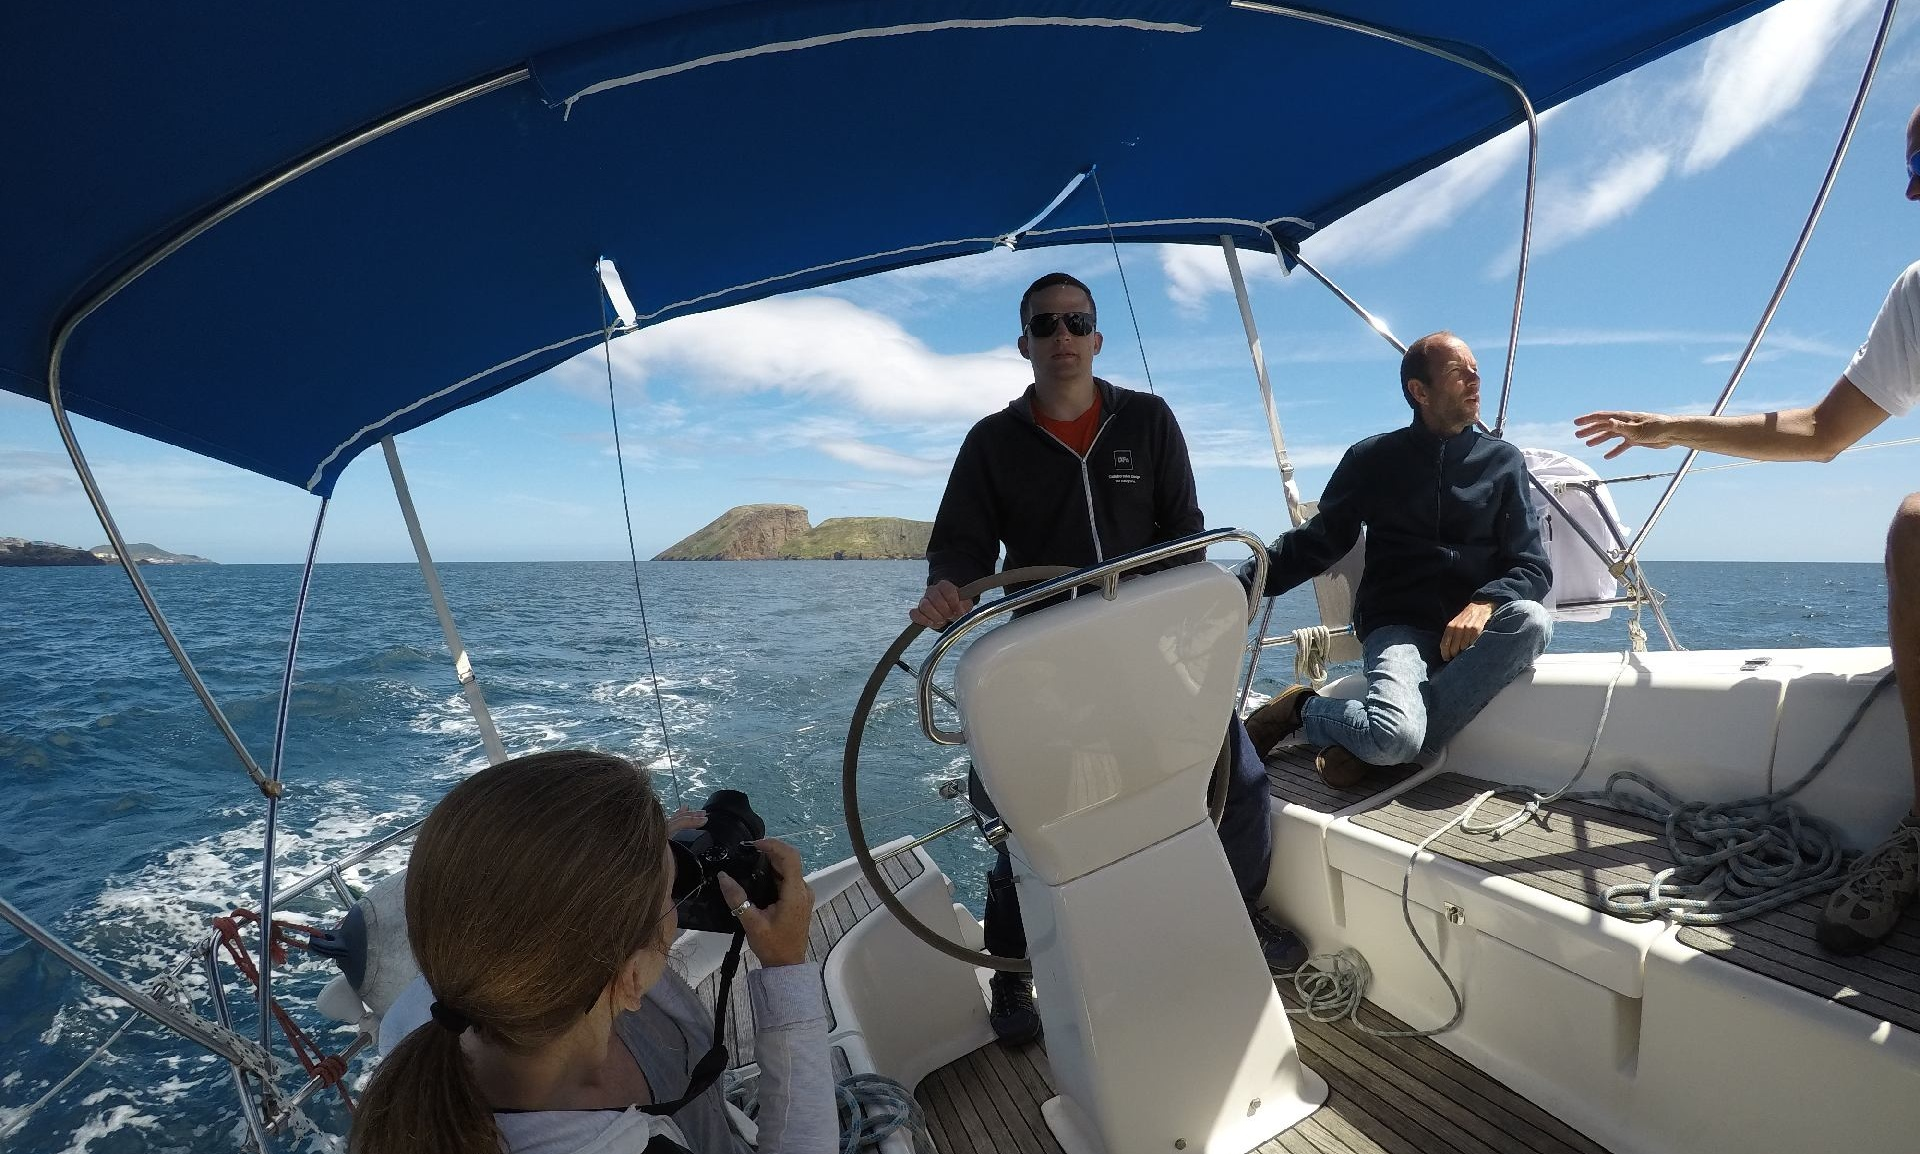 37 Tour 4 Hour Sailing Tour In Terceira Island Azores Getmyboat